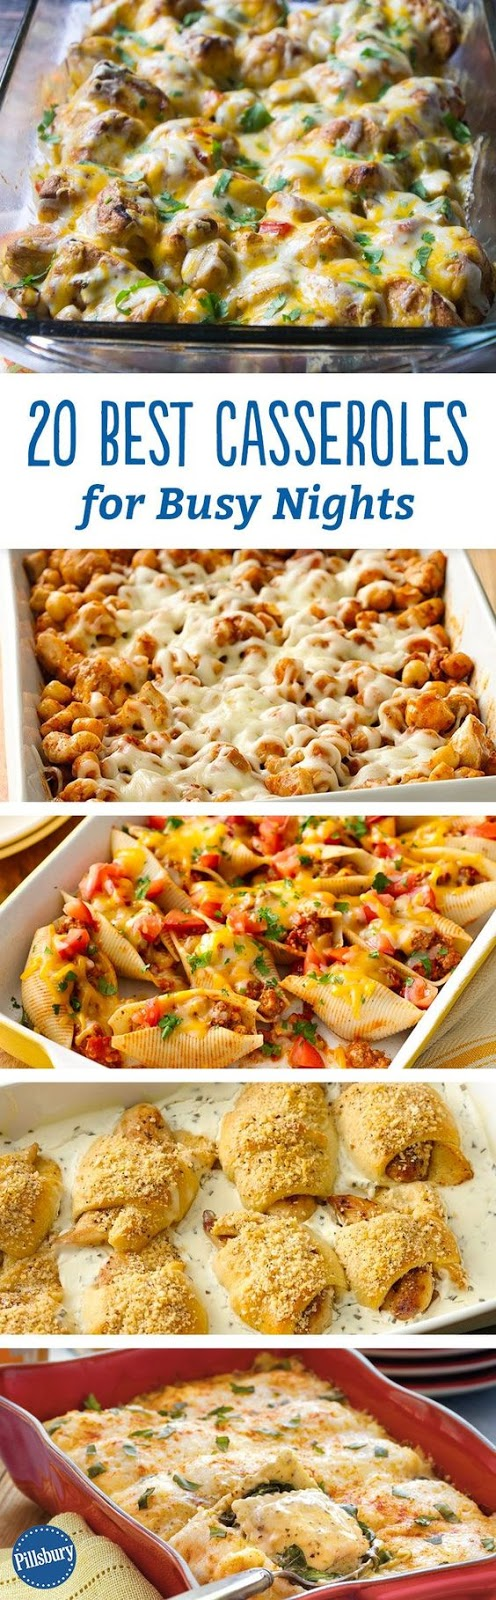 20 Best Casseroles for Busy Nights